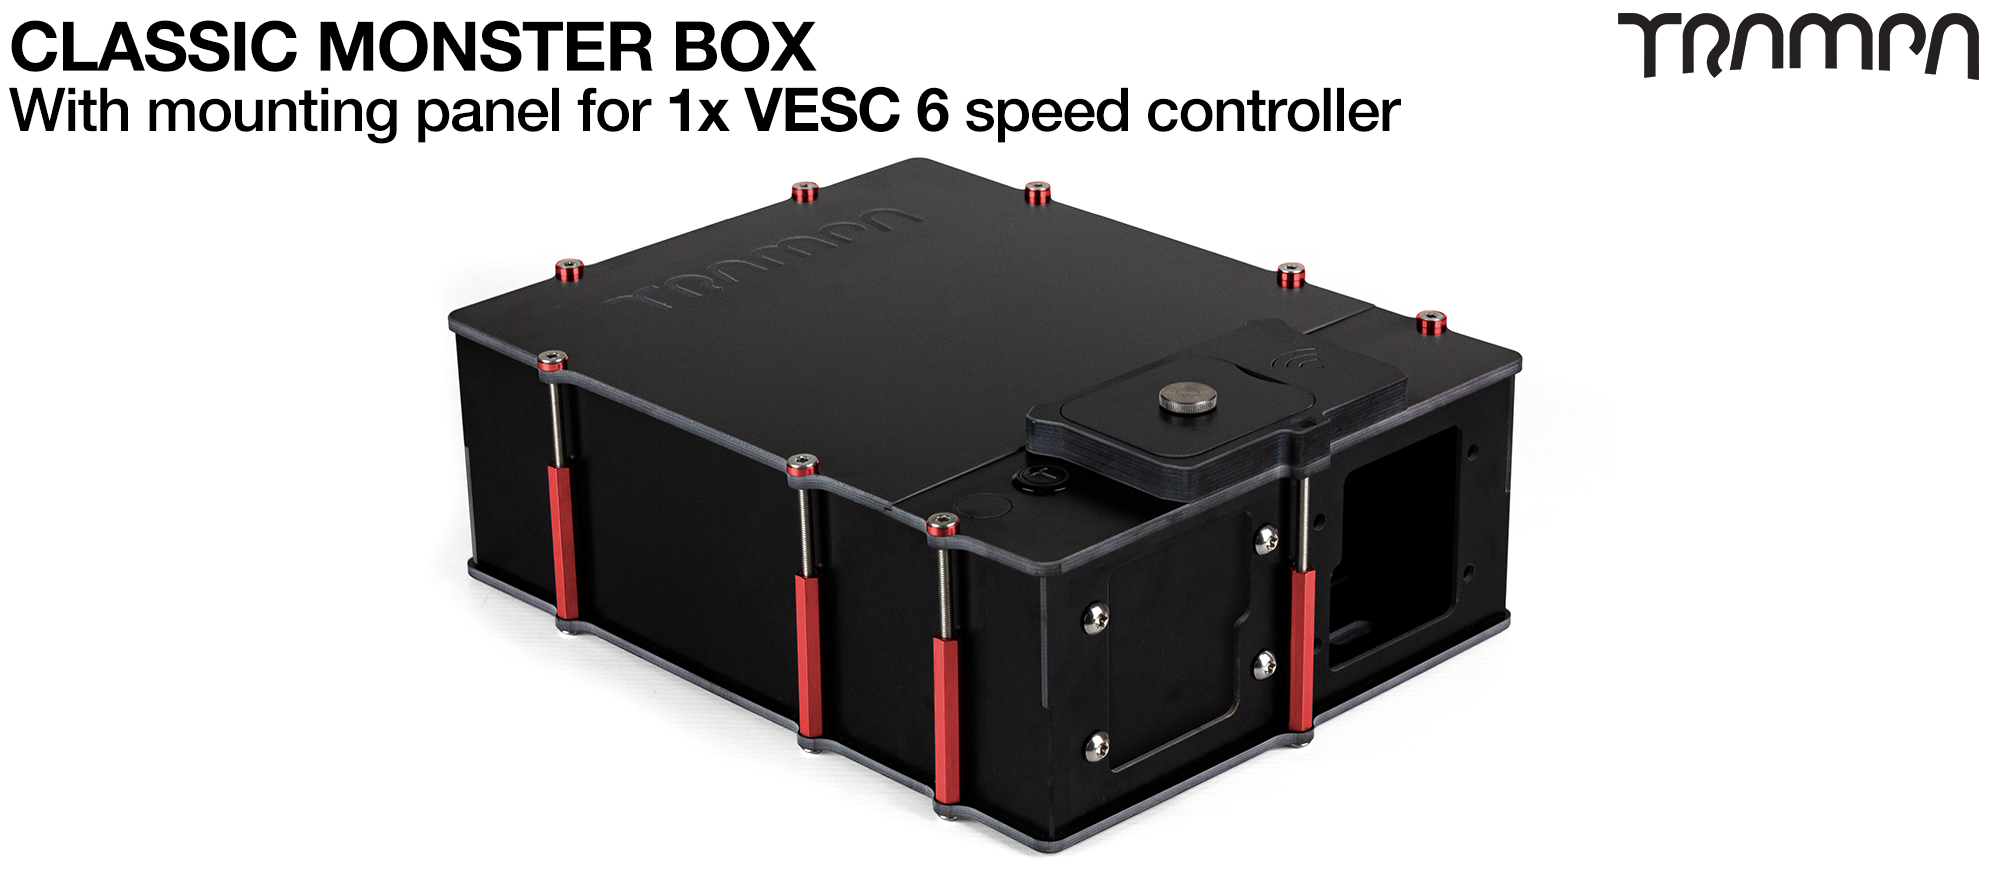 MONSTER Box MkIV fits 84x 18650 cells to give 12s7p 21A or 2x22000 mAh Lipos & has Panels to fit 1x VESC 6 Internally. Made specifically to work in conjunction with TRAMPA's 1WD Electric mountainboard ecks but also works on any thing it can be adapted too